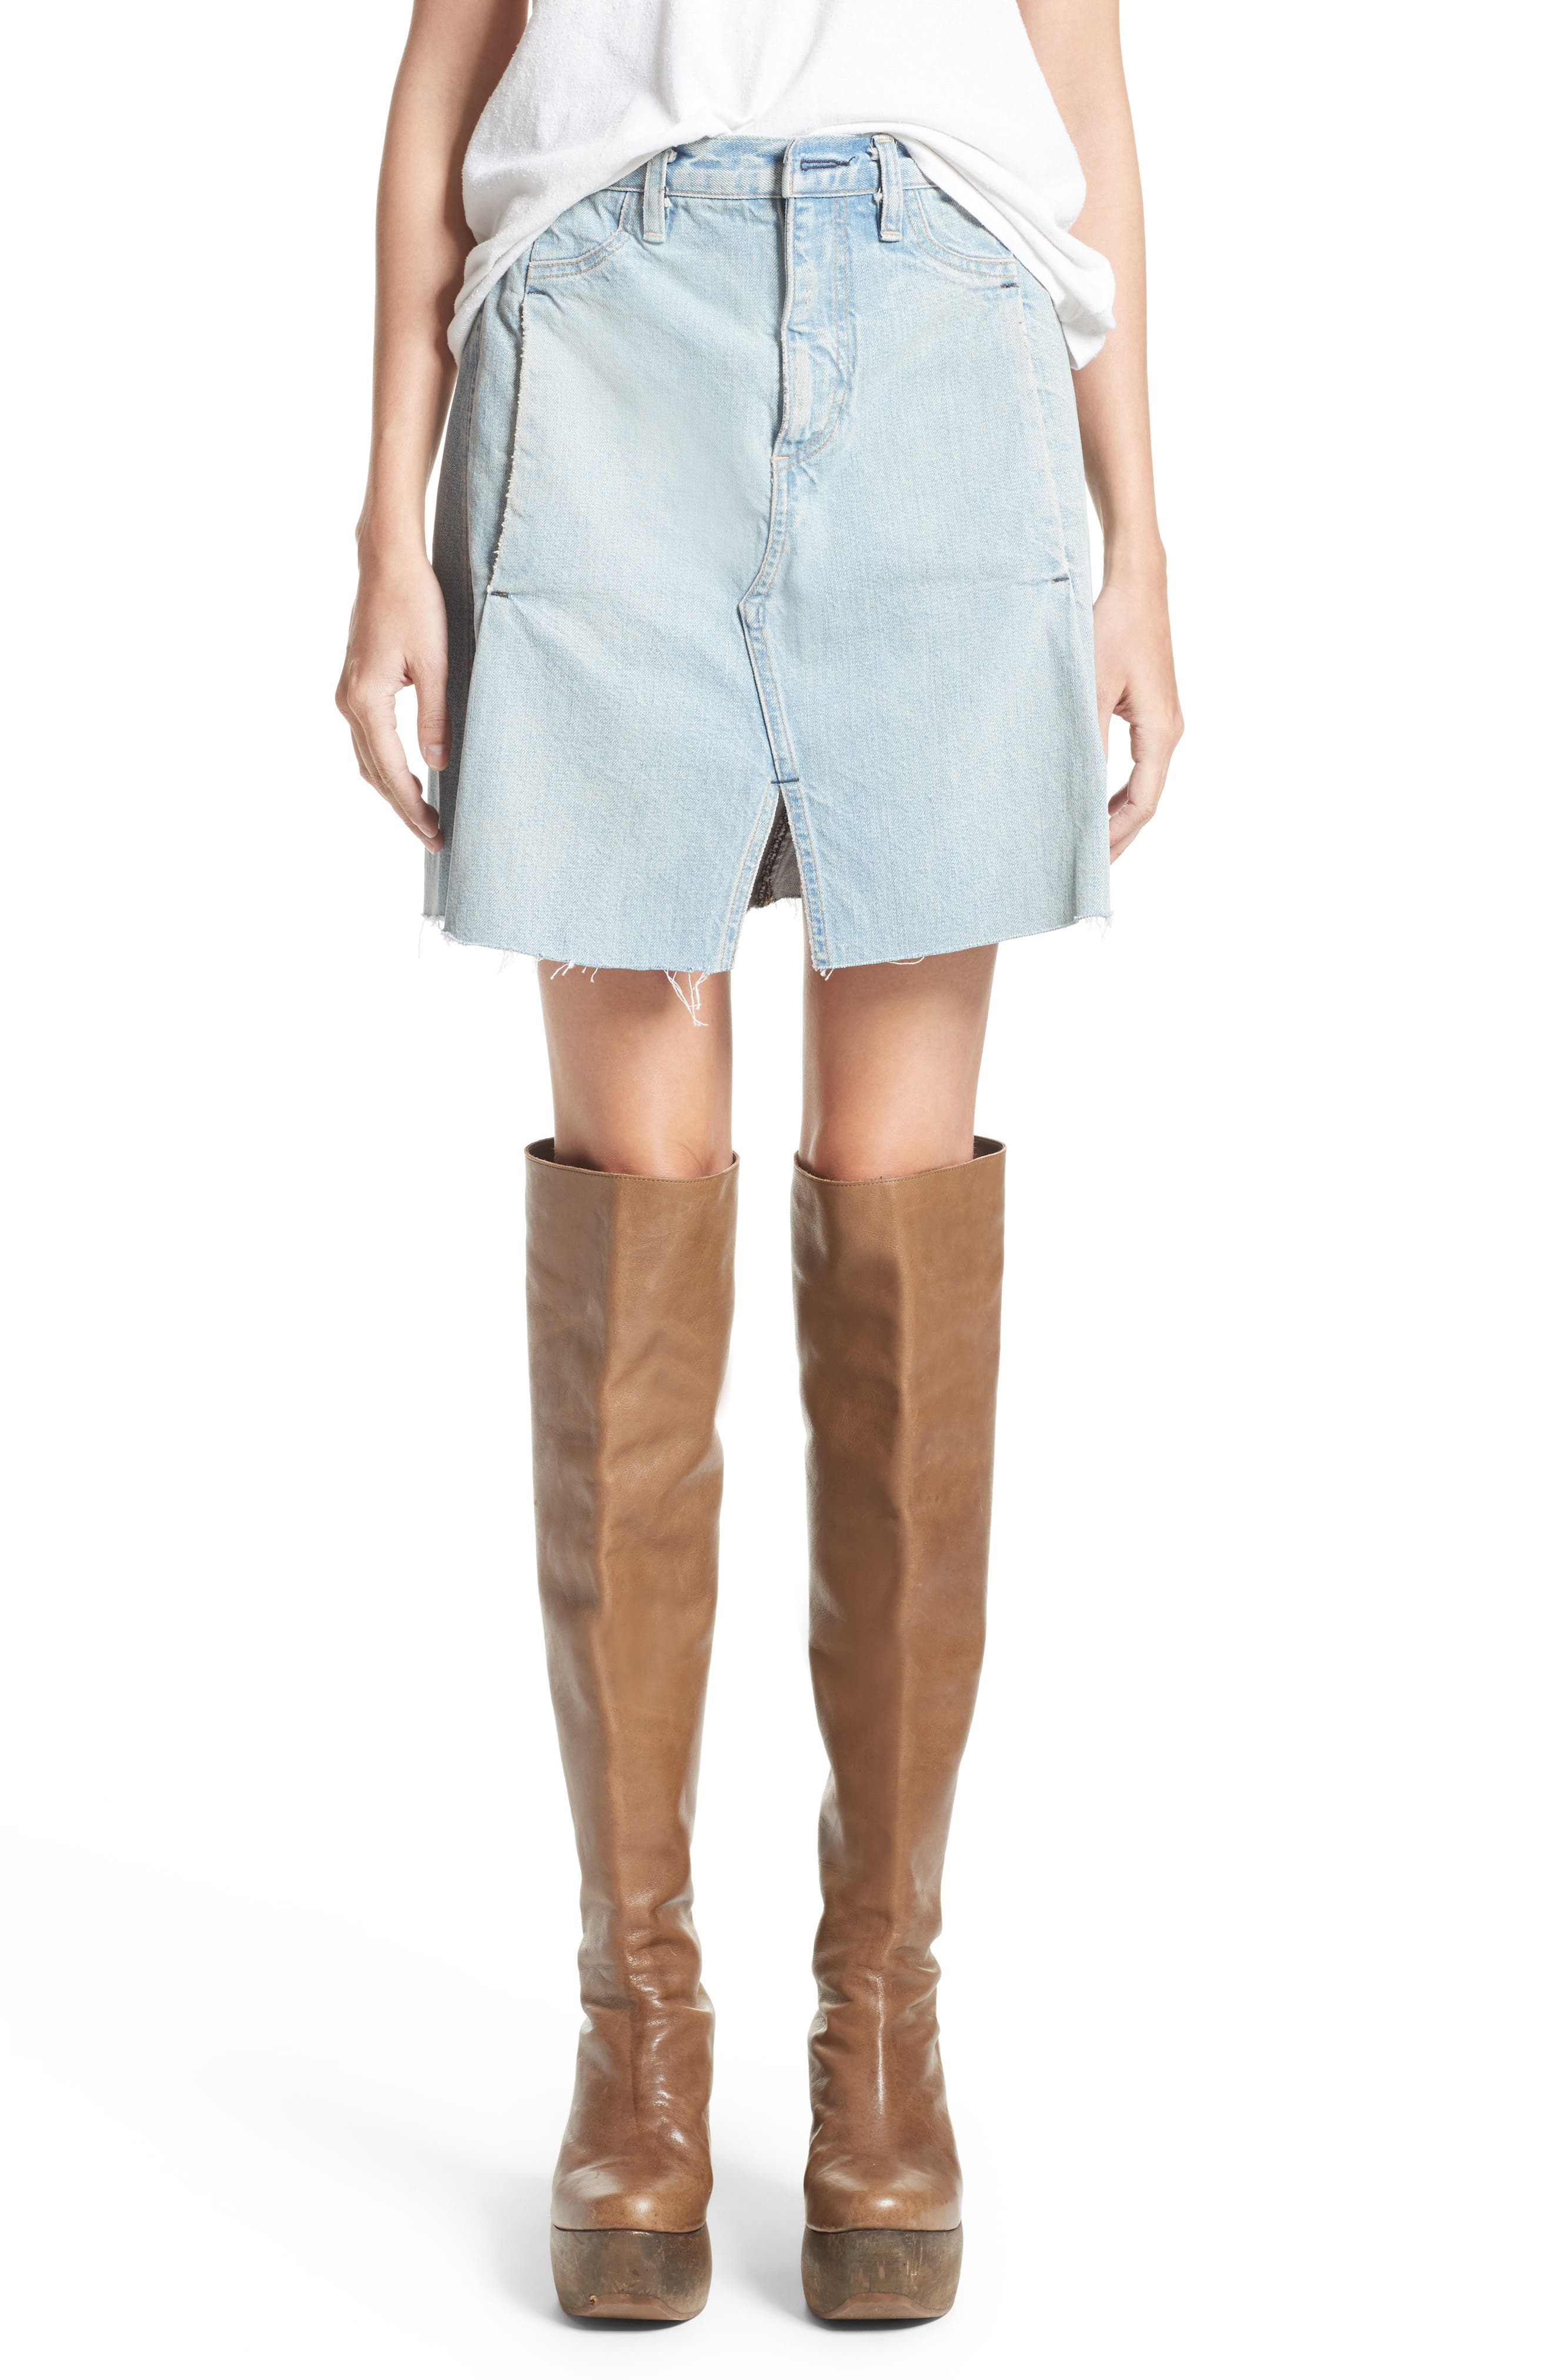 Alternate Image 1 Selected - Simon Miller Denim Skirt (Nordstrom Exclusive)